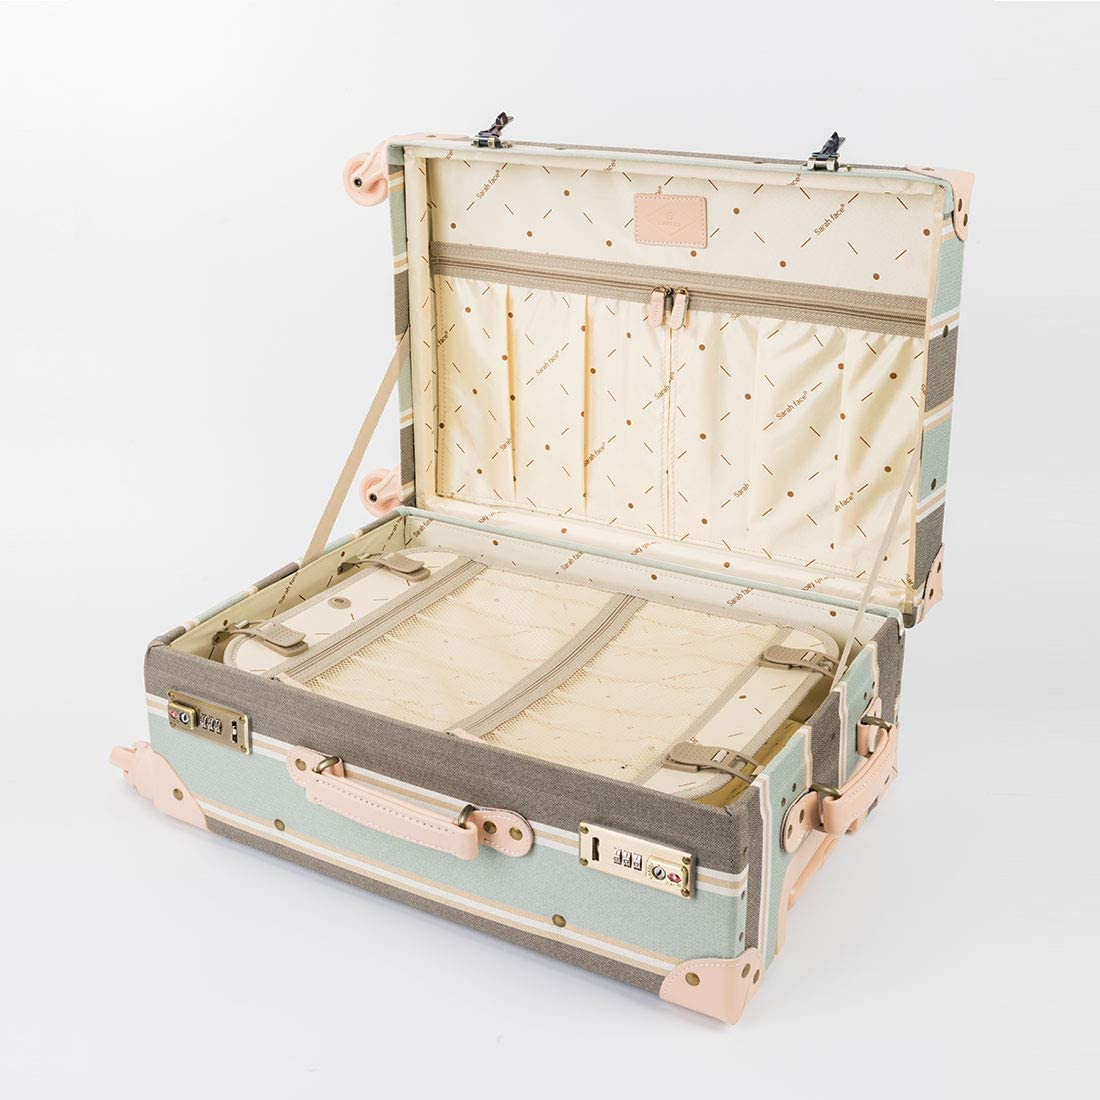 COTRUNKAGE Travel Luggage Trunk Vintage Women Suitcase with TSA Lock